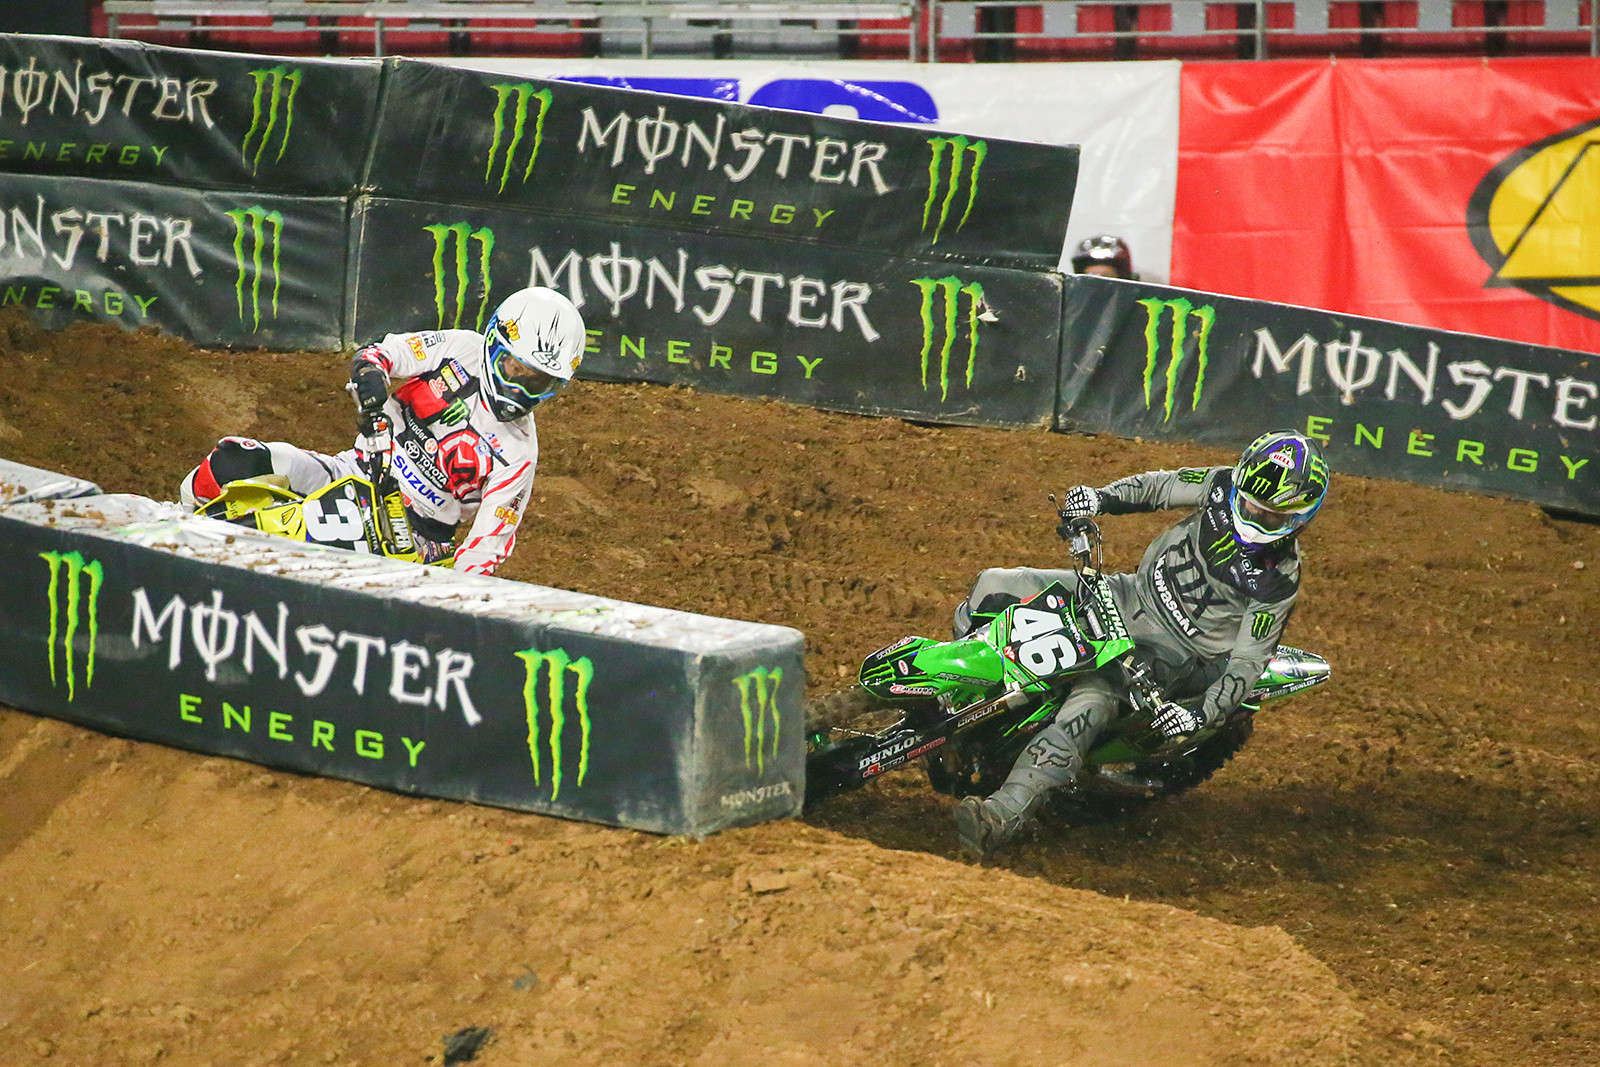 Phil Nicoletti and Justin Hill - Photo Blast: Glendale - Motocross Pictures - Vital MX